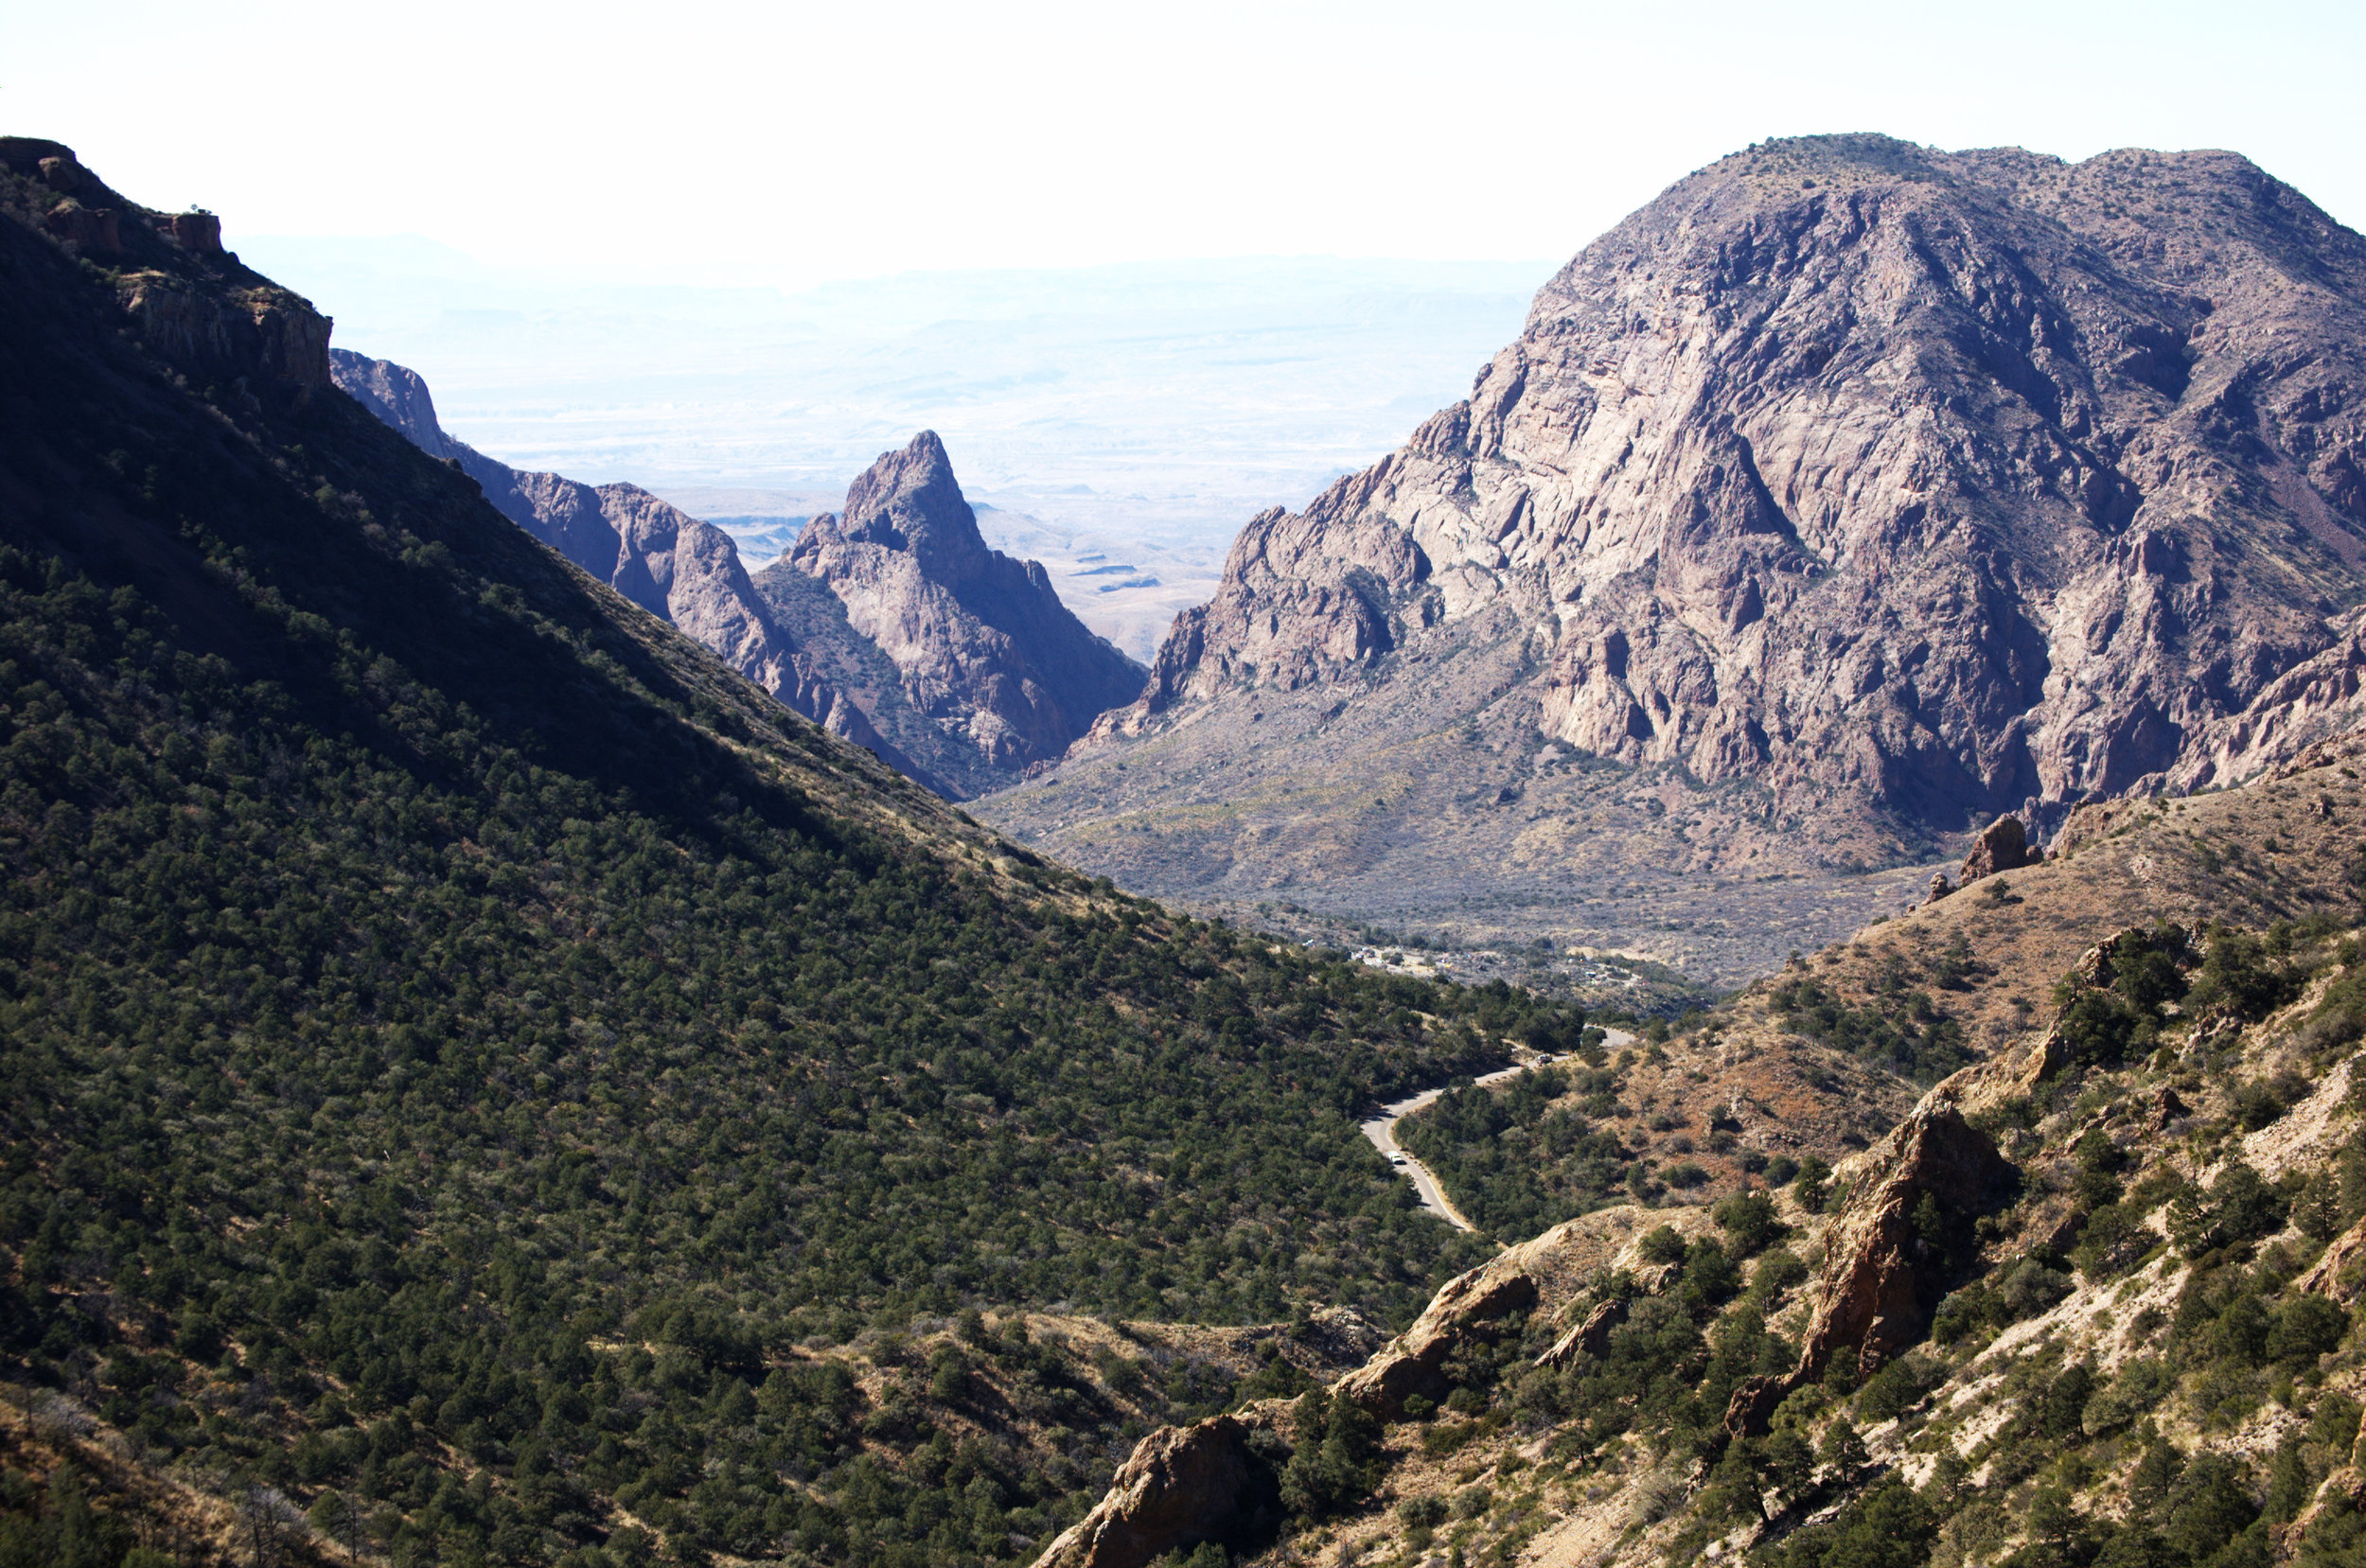 Panther Pass with The Window in the background, Chisos Mountains